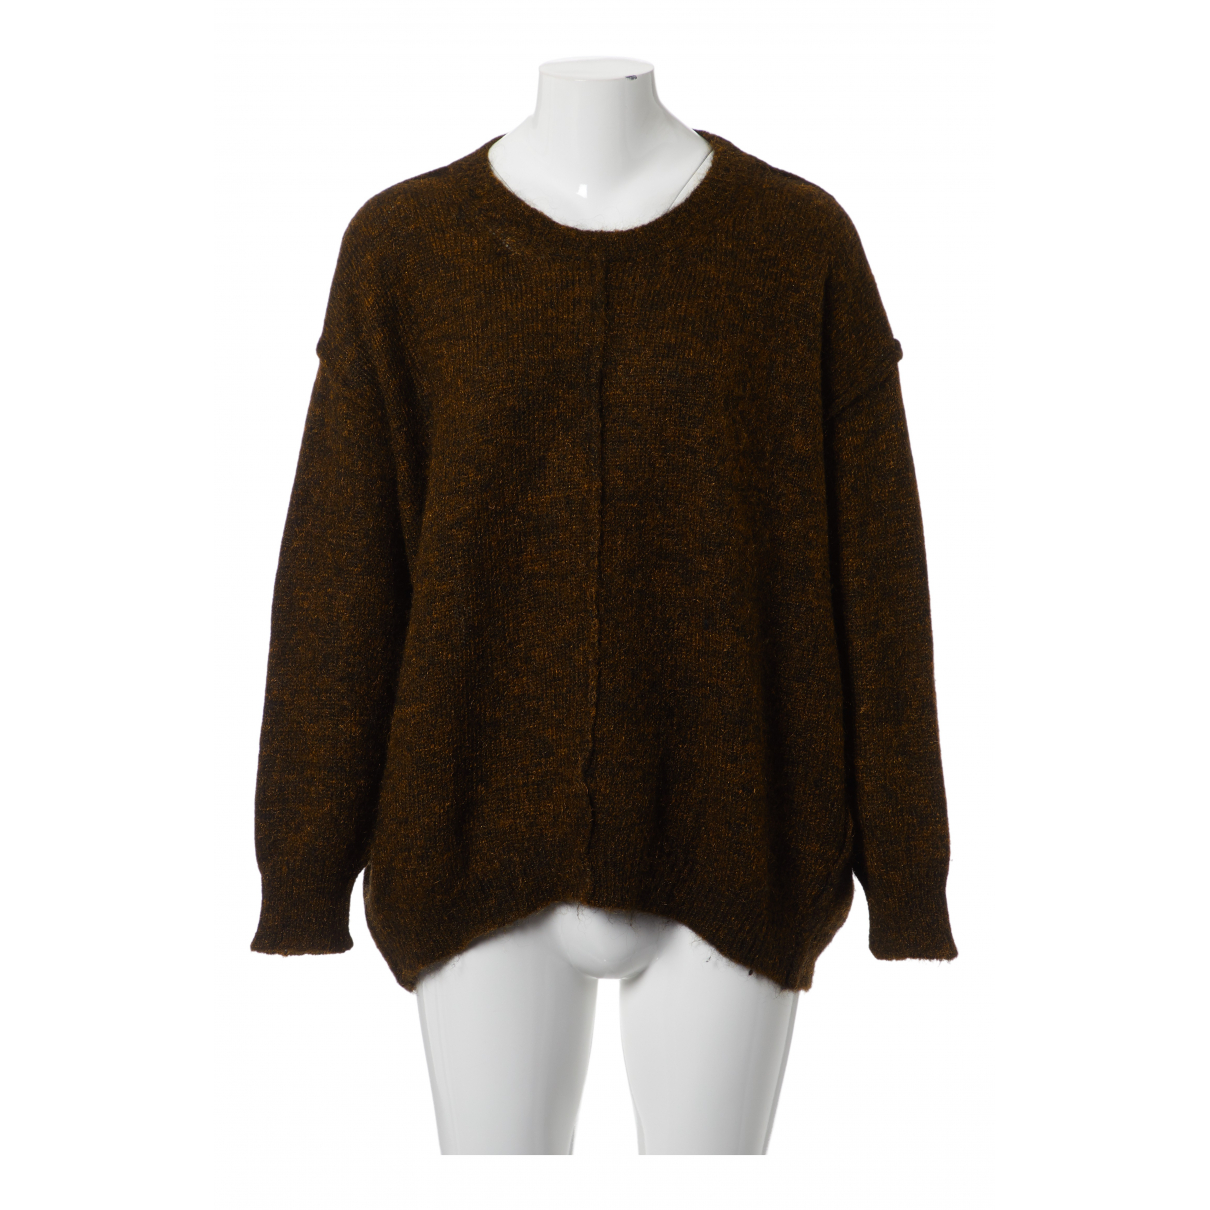 Isabel Marant N Gold Knitwear for Women 38 FR